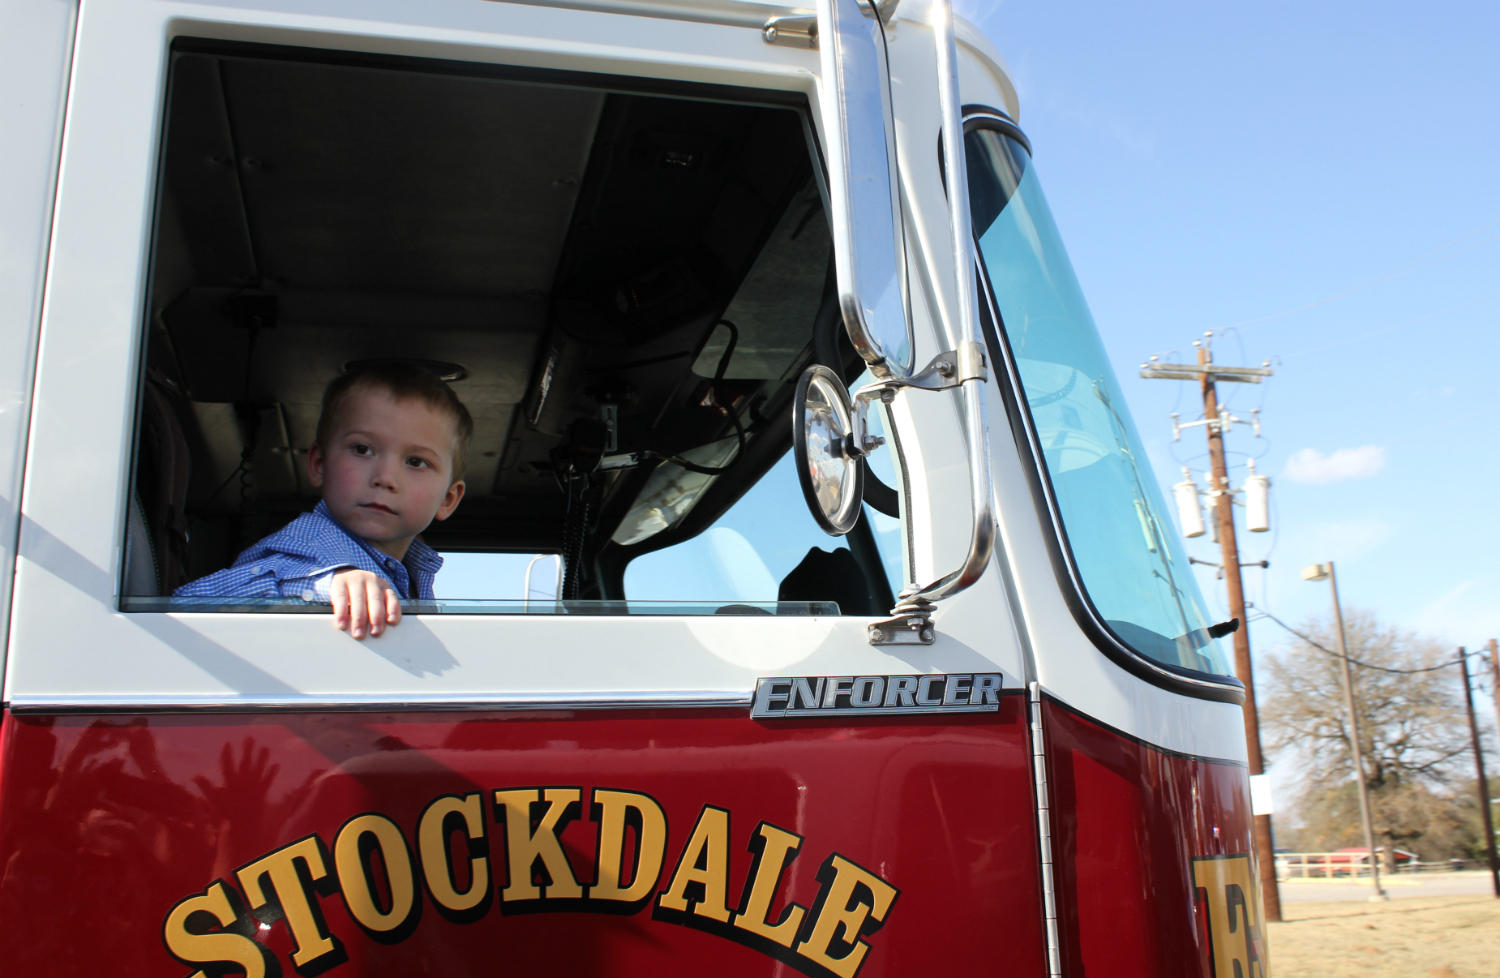 Texas shooting victim, 6, goes home on a firetruck